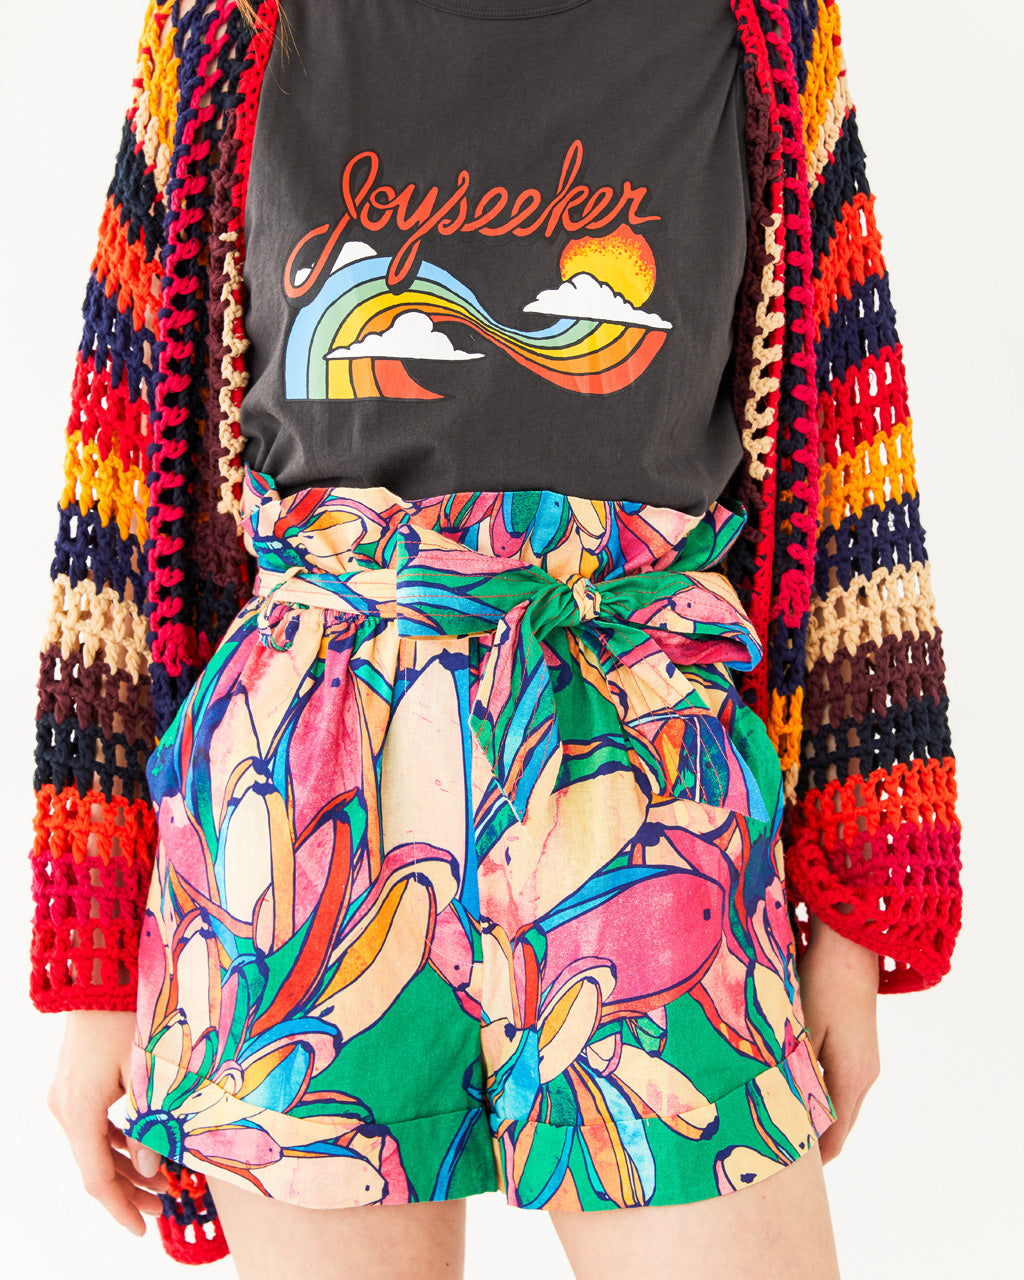 bright rainbow banana pattern shorts with a high waisted fit featuring a tie belt